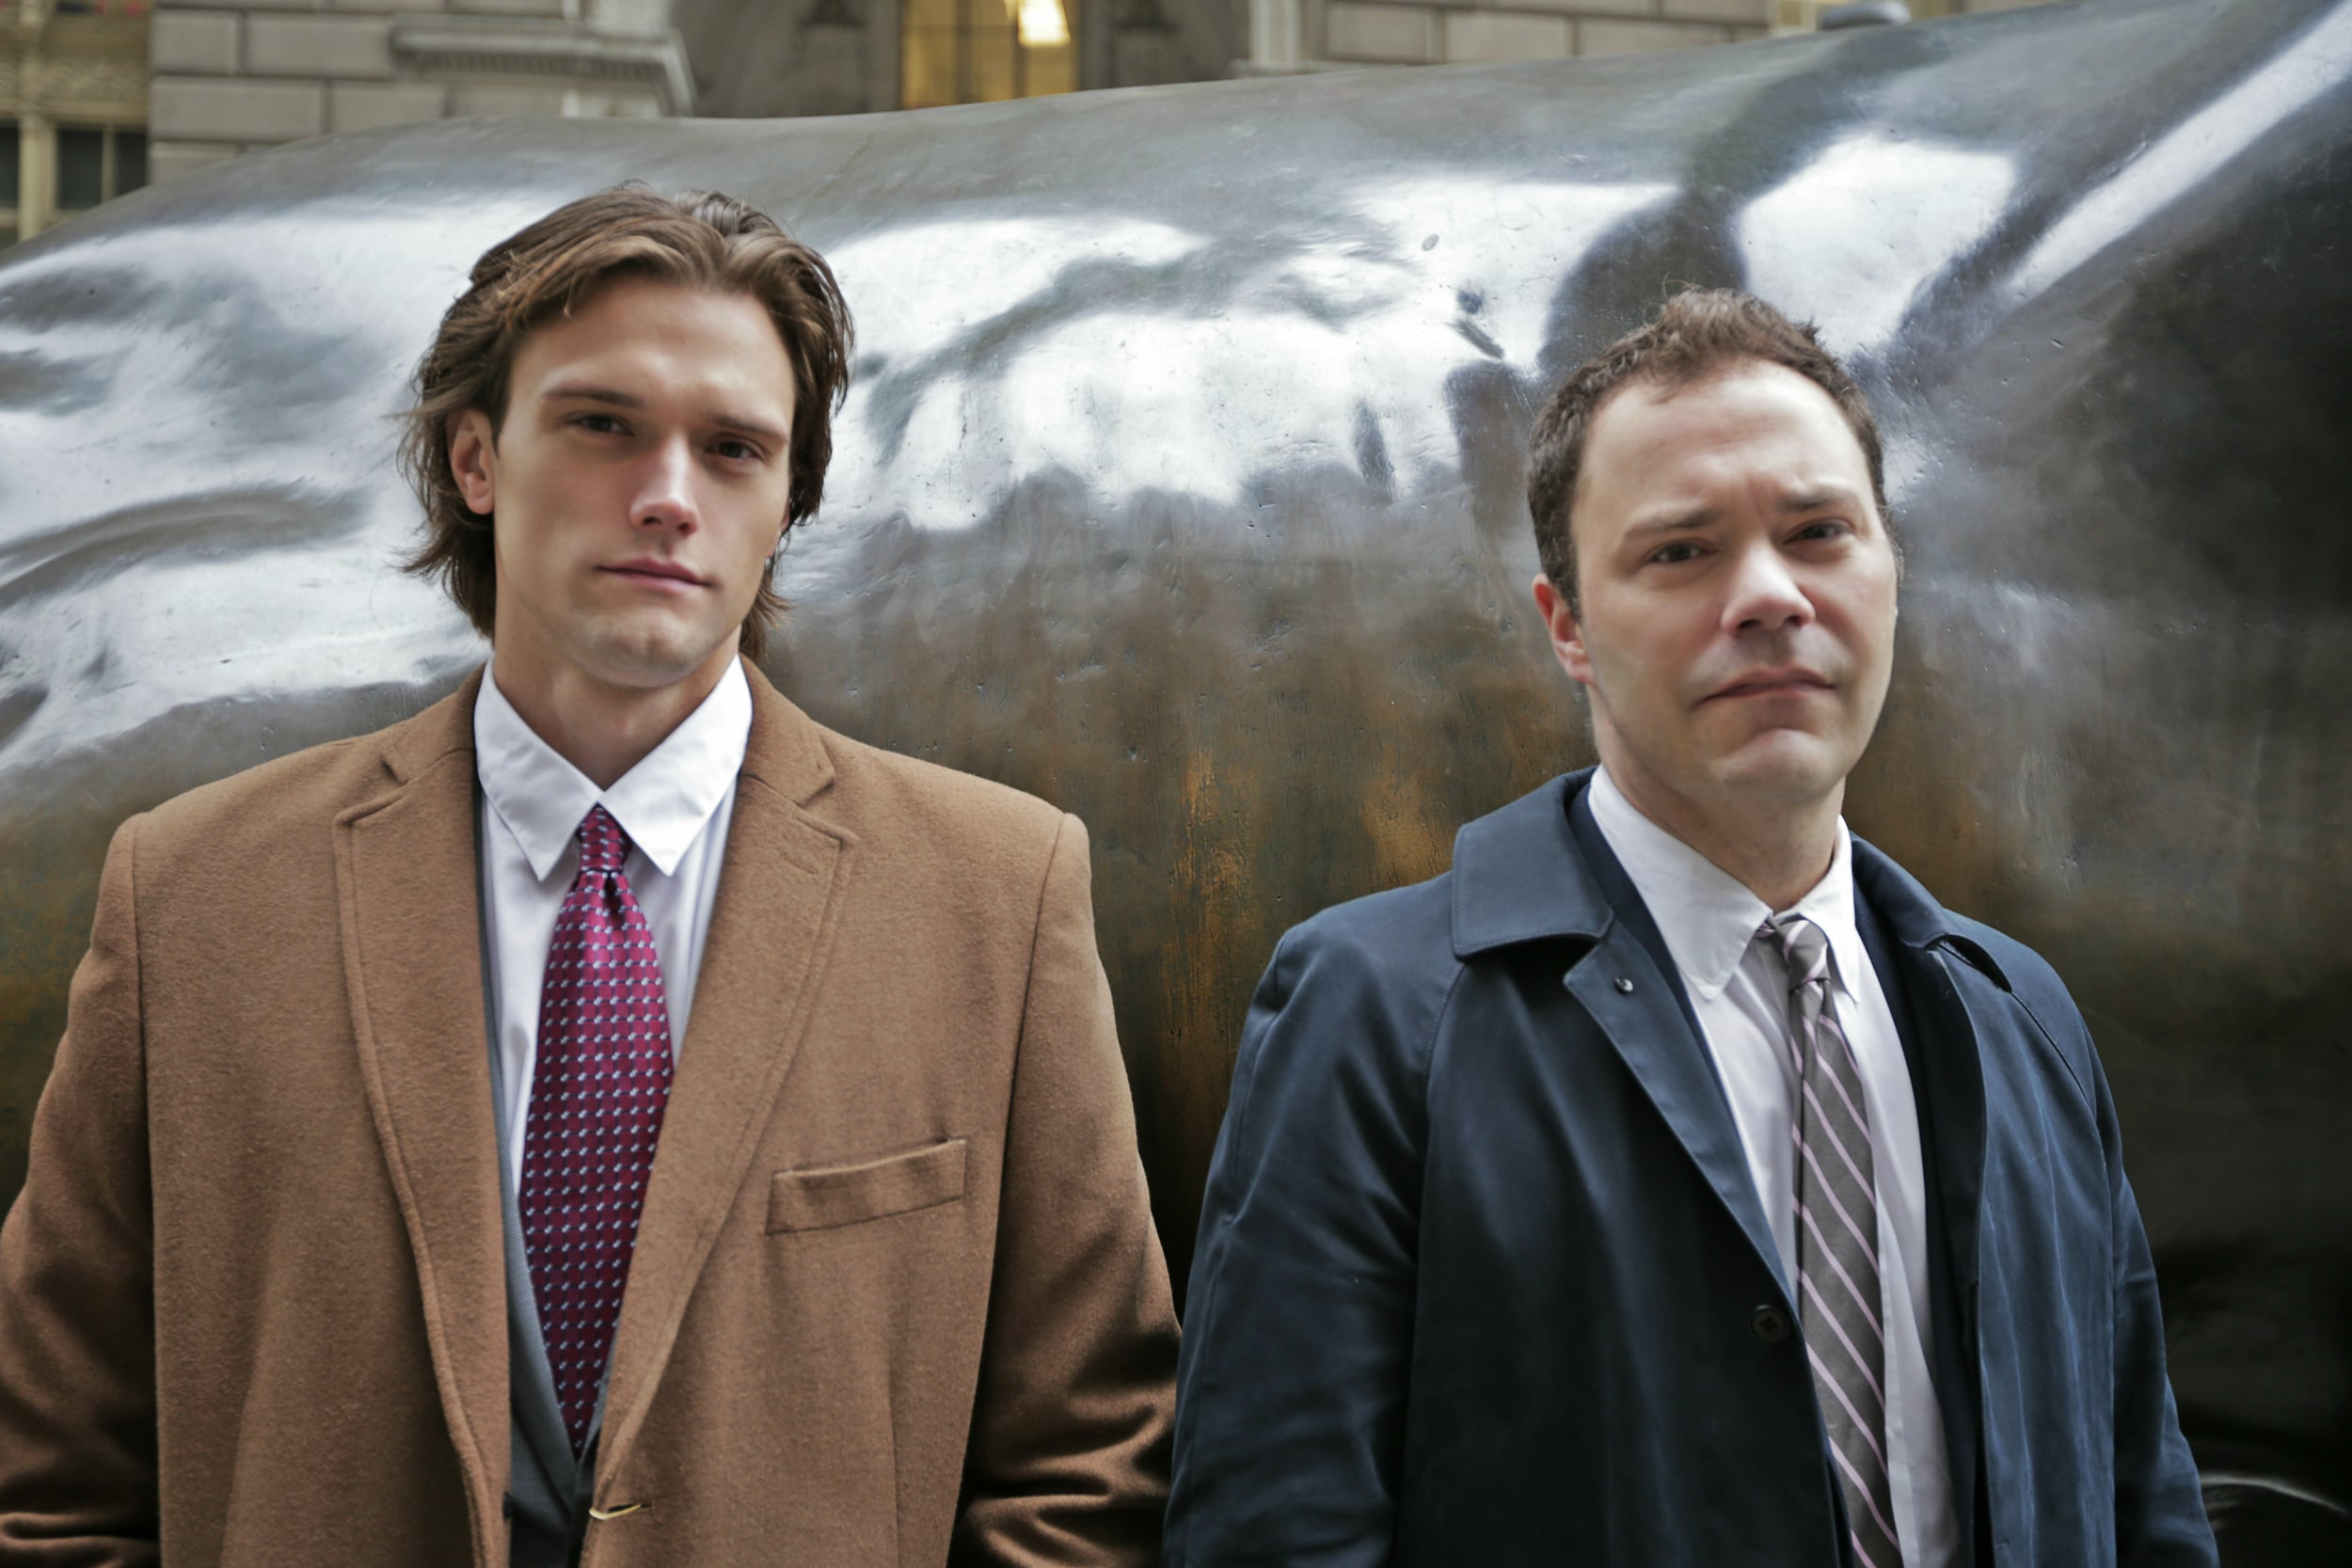 Hartley Sawyer and Wilson Cleveland in front of the Wall Street bull.